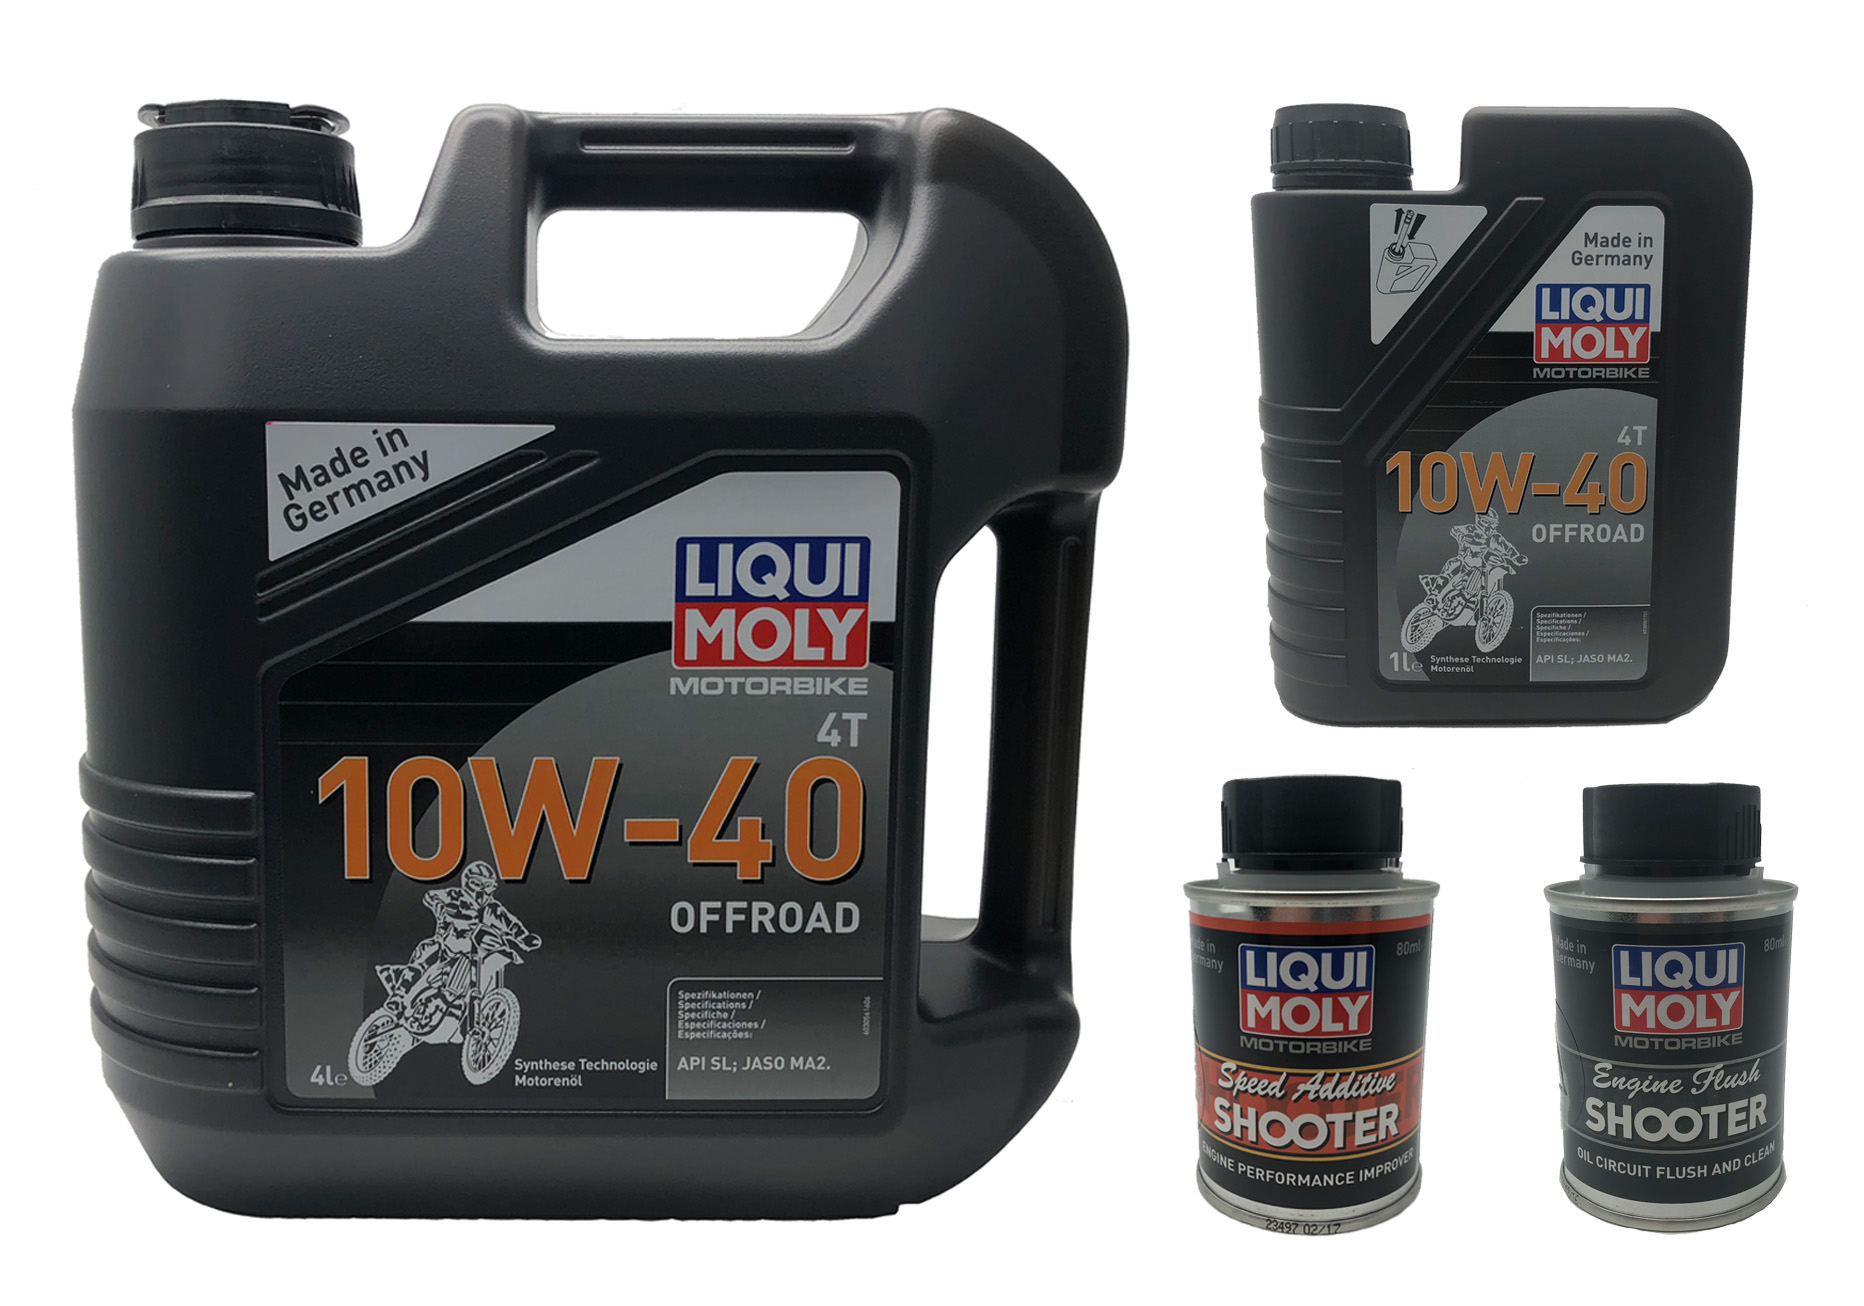 LIQUI MOLY 4 IN 1 SERVICE PERFORMANCE BUNDLE PACK